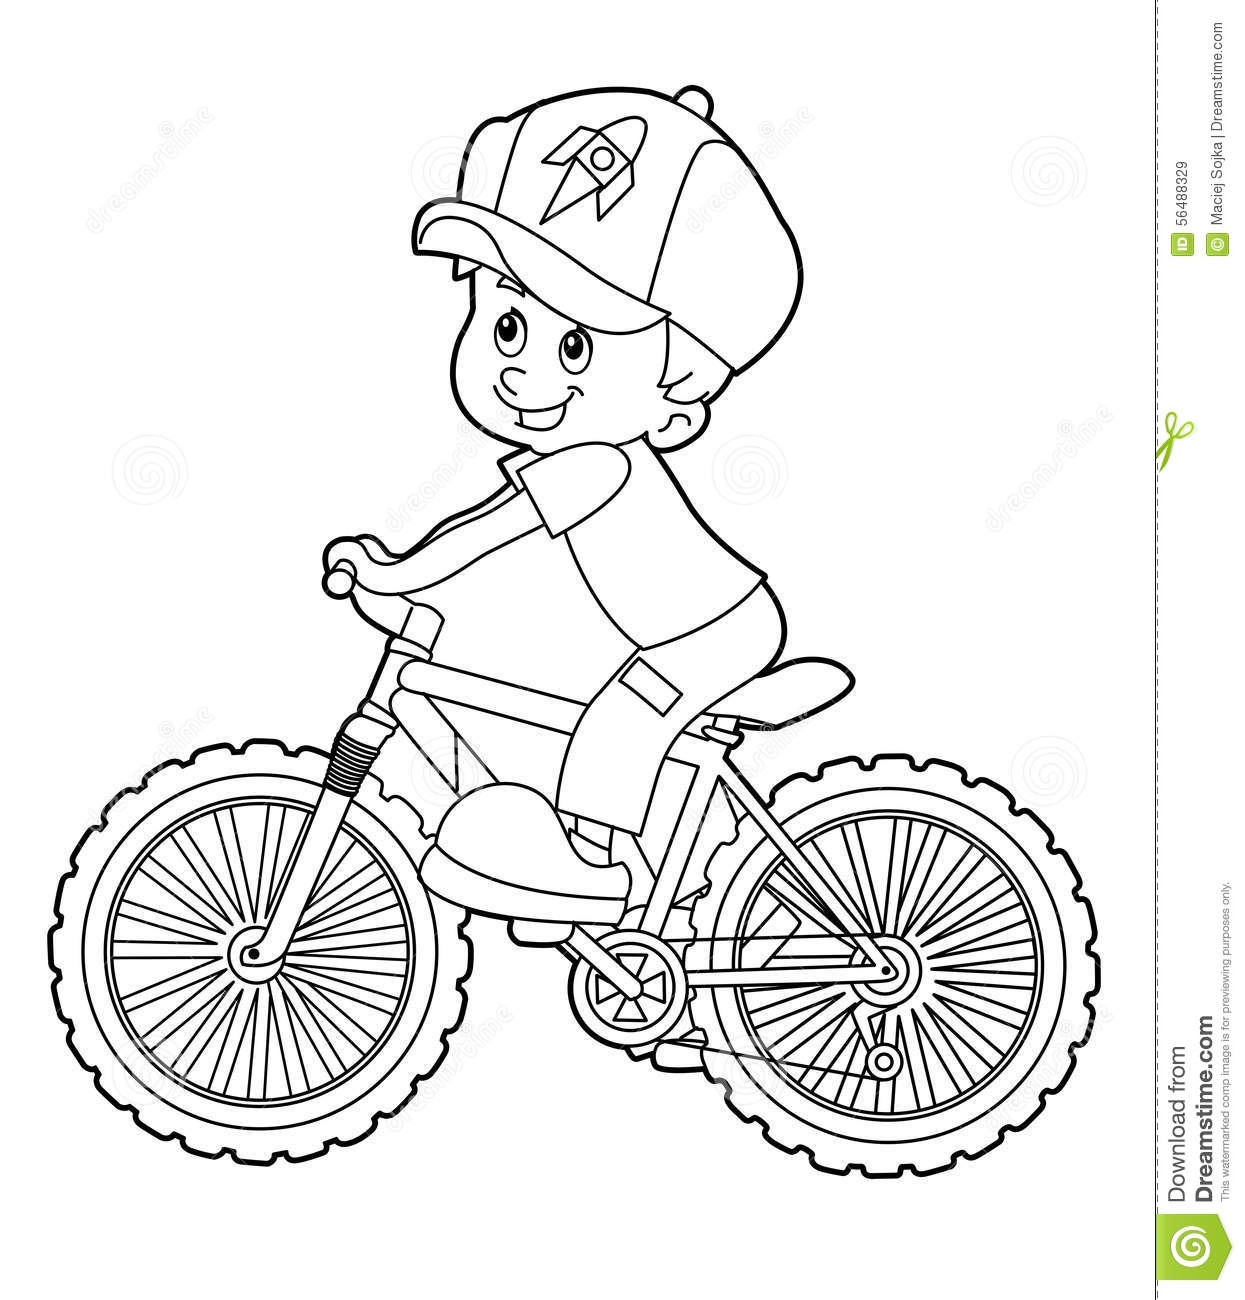 1245x1300 Bike Riding Coloring Pages Collection Coloring For Kids